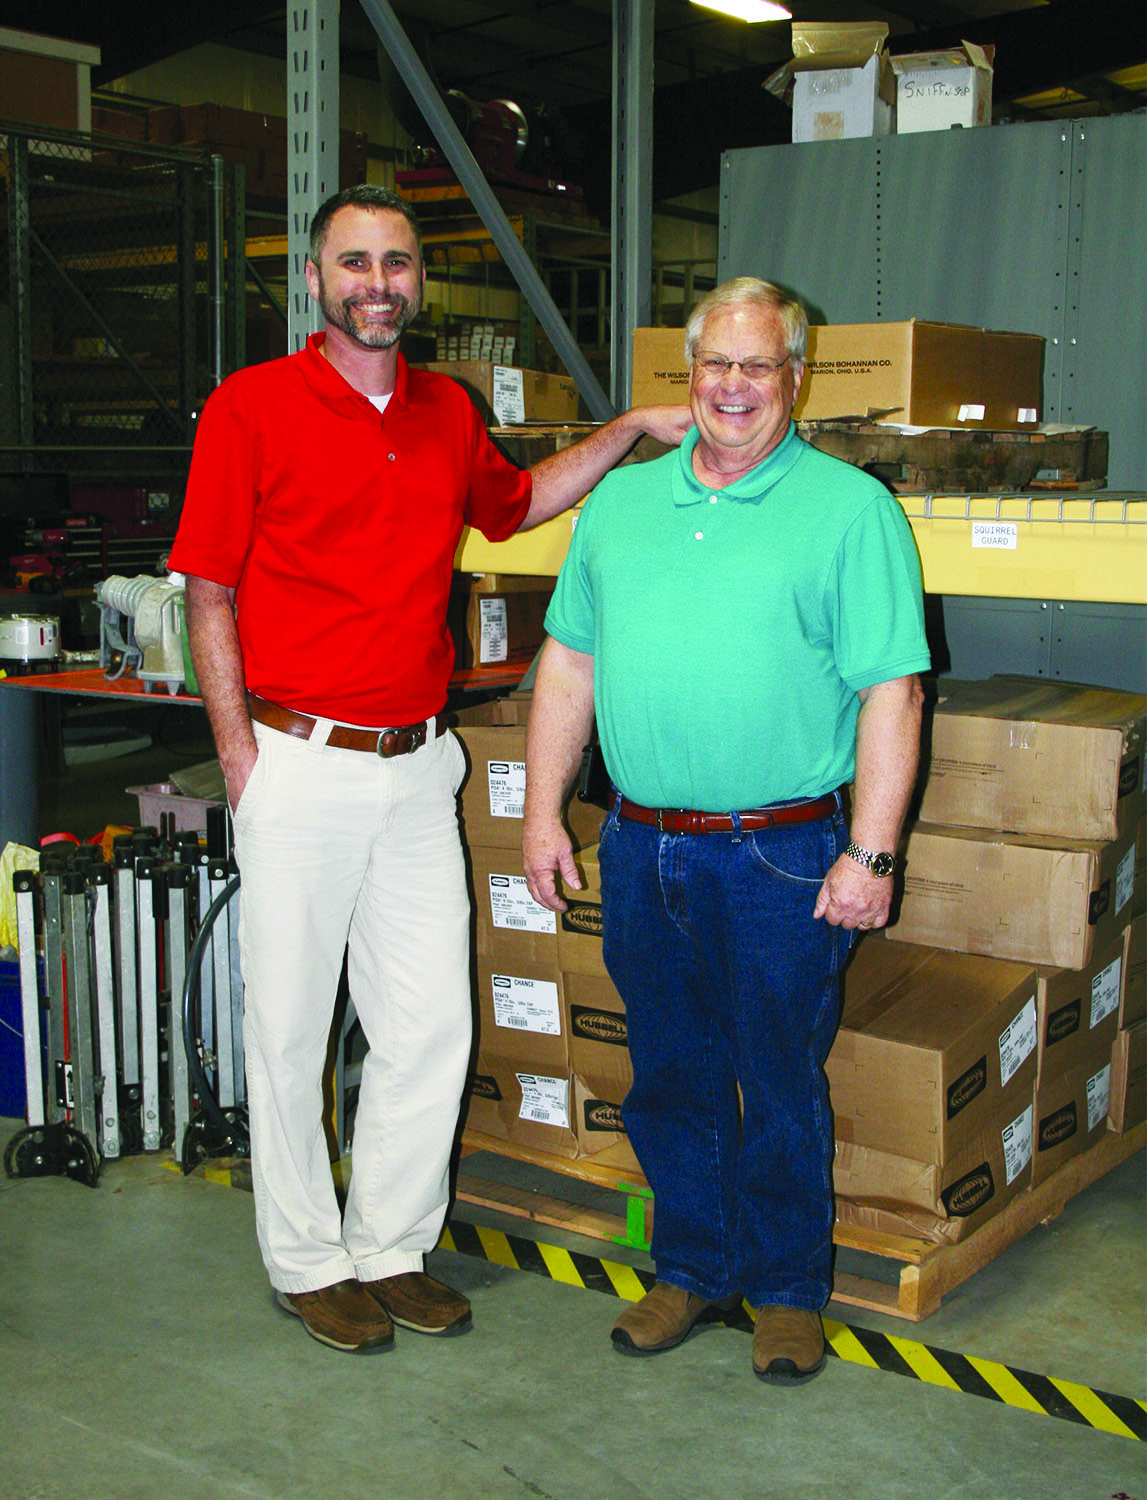 Baldwin EMC retiree Butch Long sits down with employee Tim Hobbs